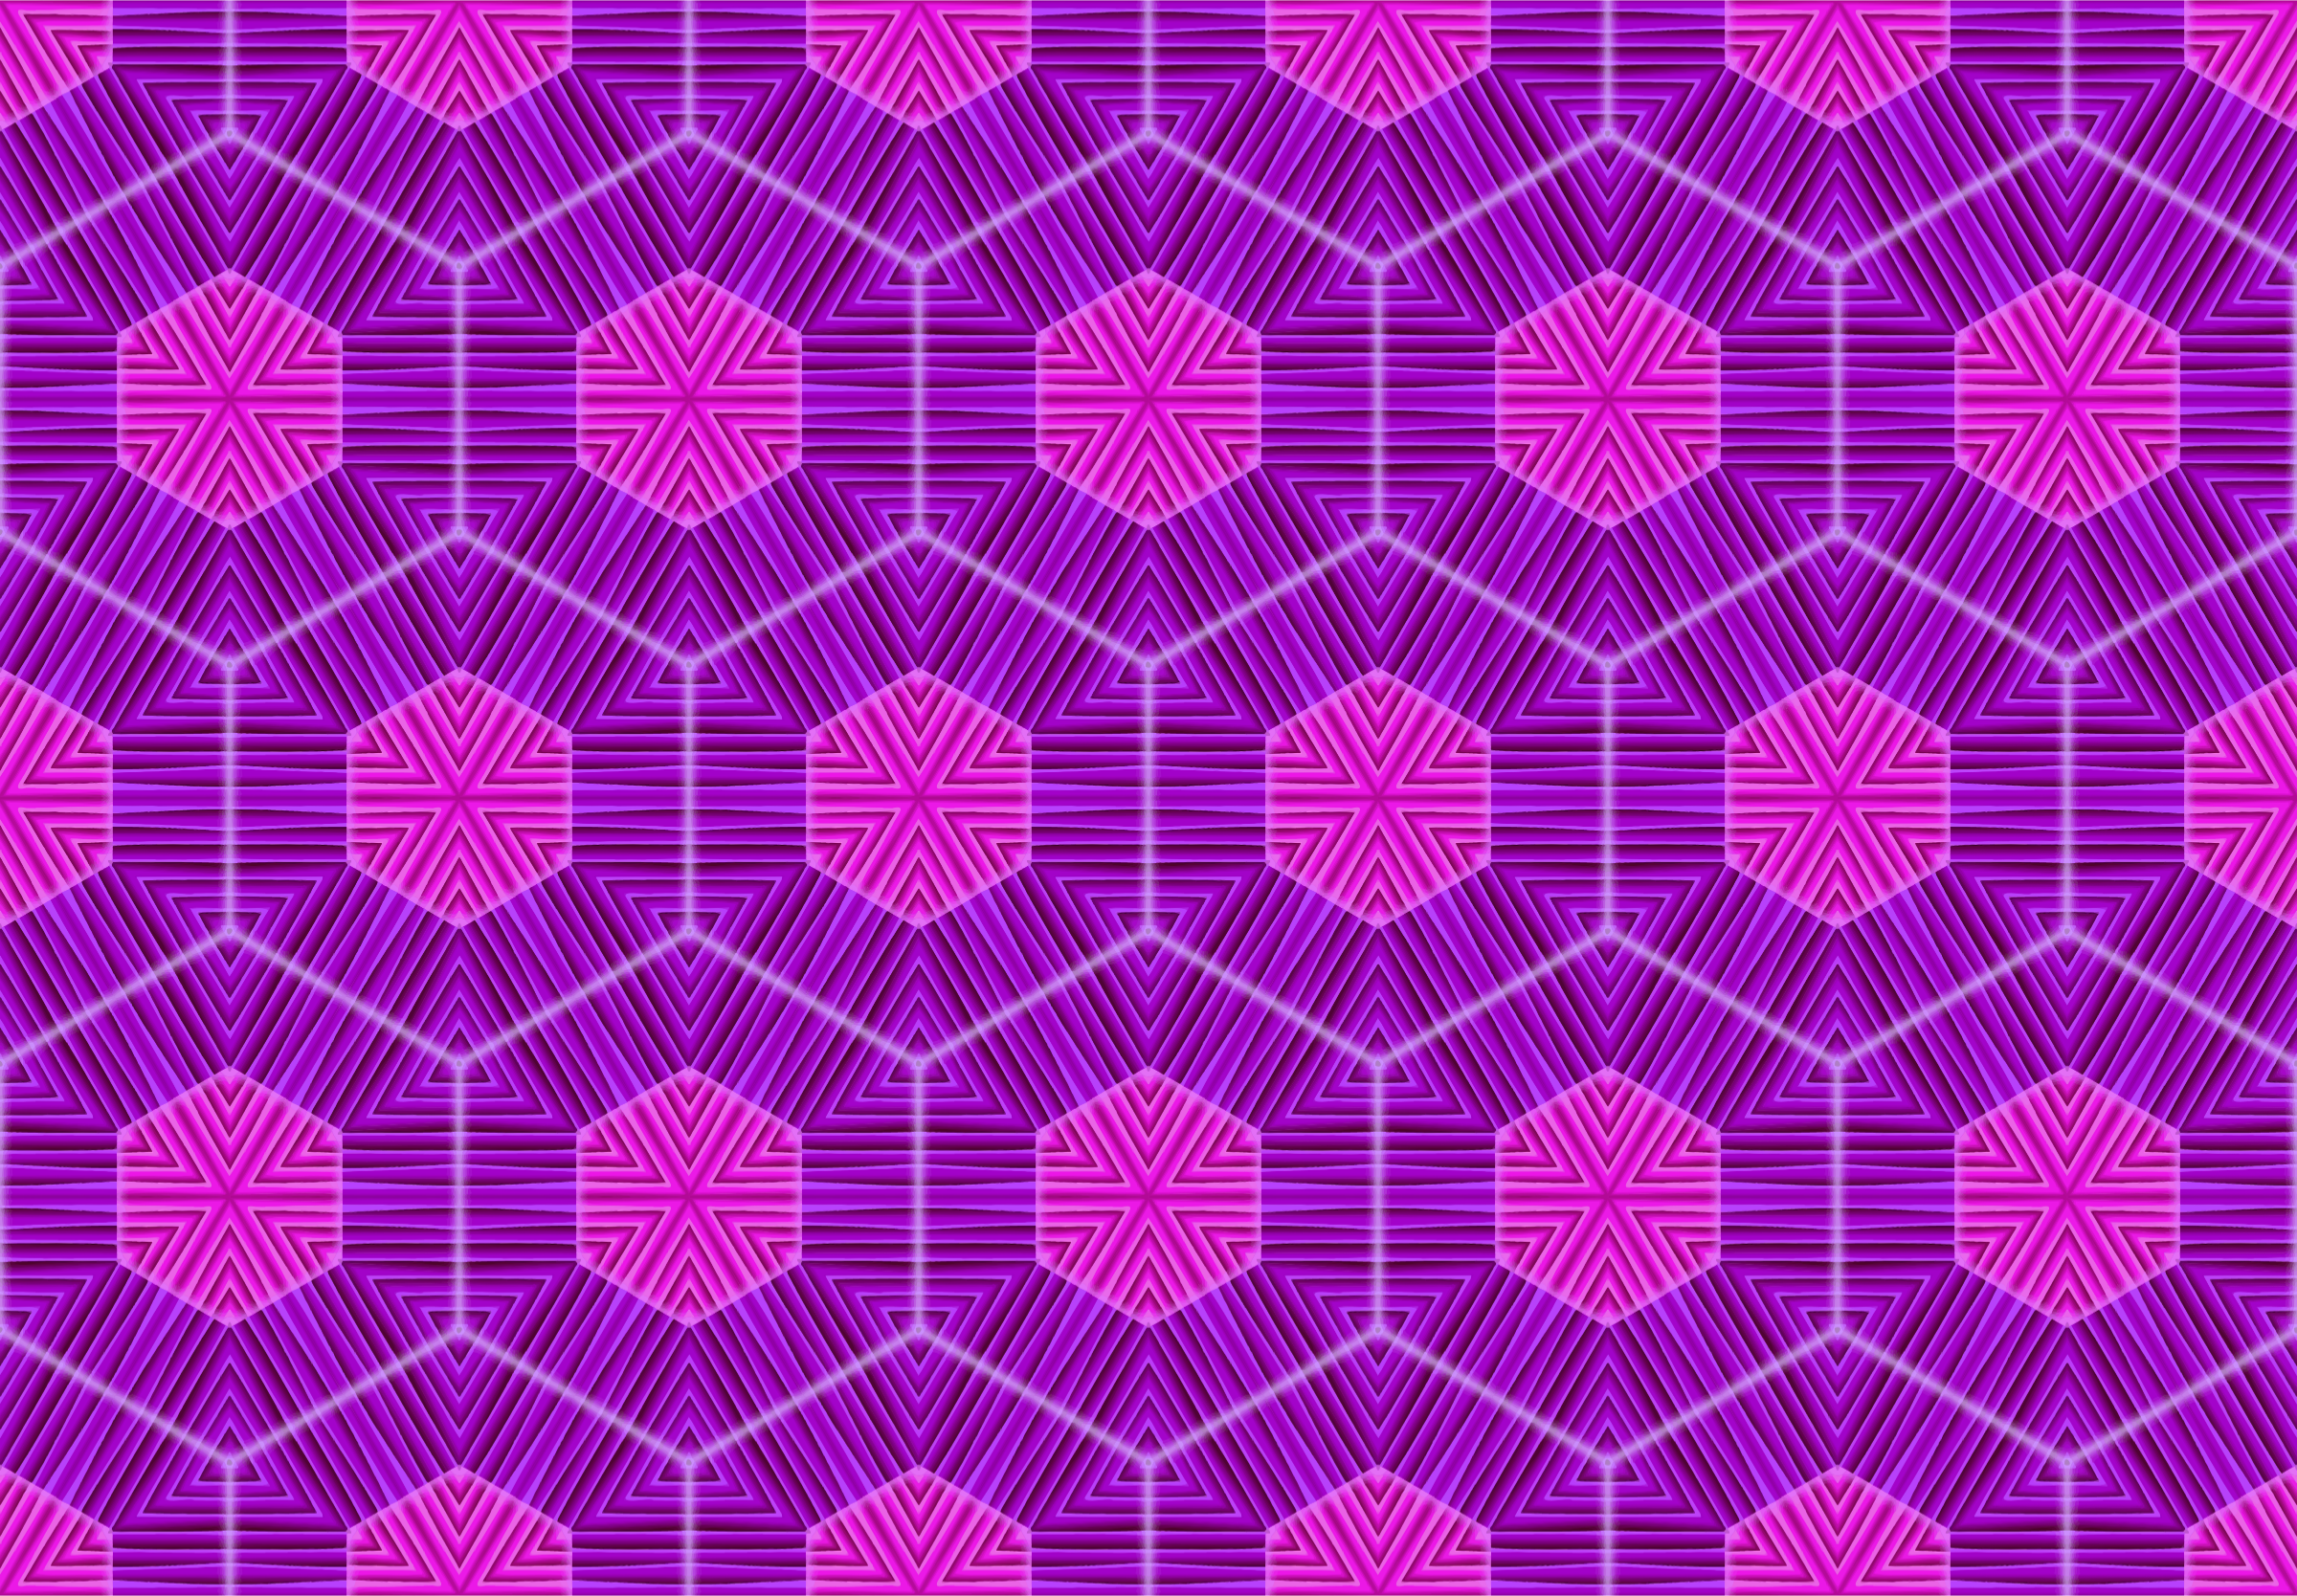 Background pattern 246 (colour 5) by Firkin